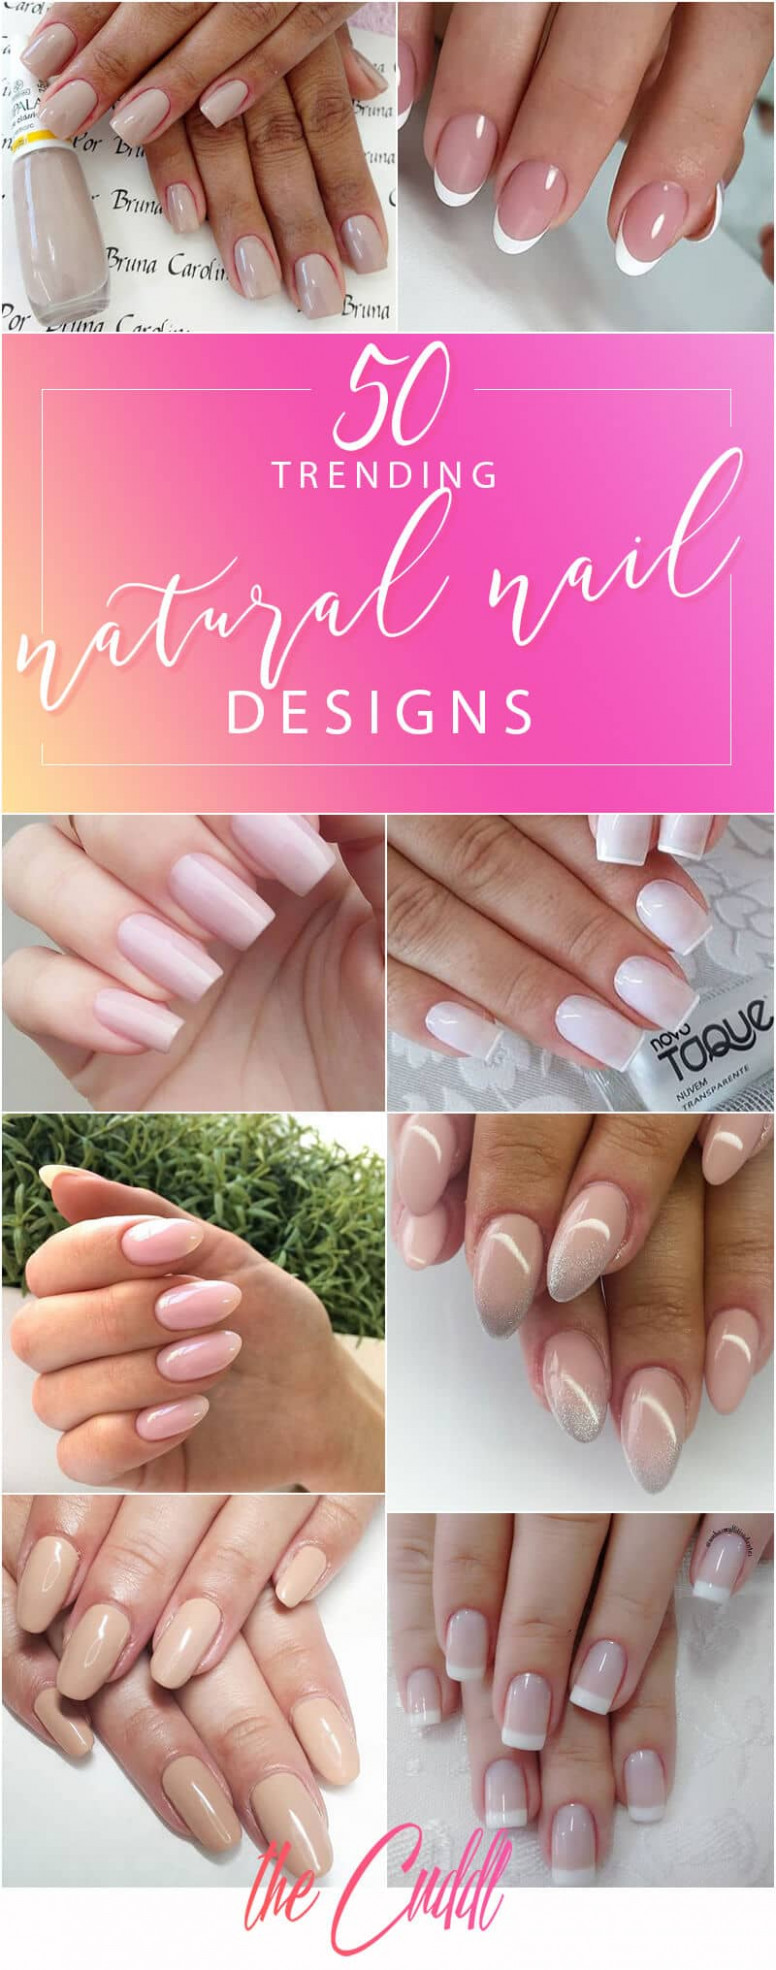 9 Best Natural Nail Ideas and Designs Anyone Can Do From Home